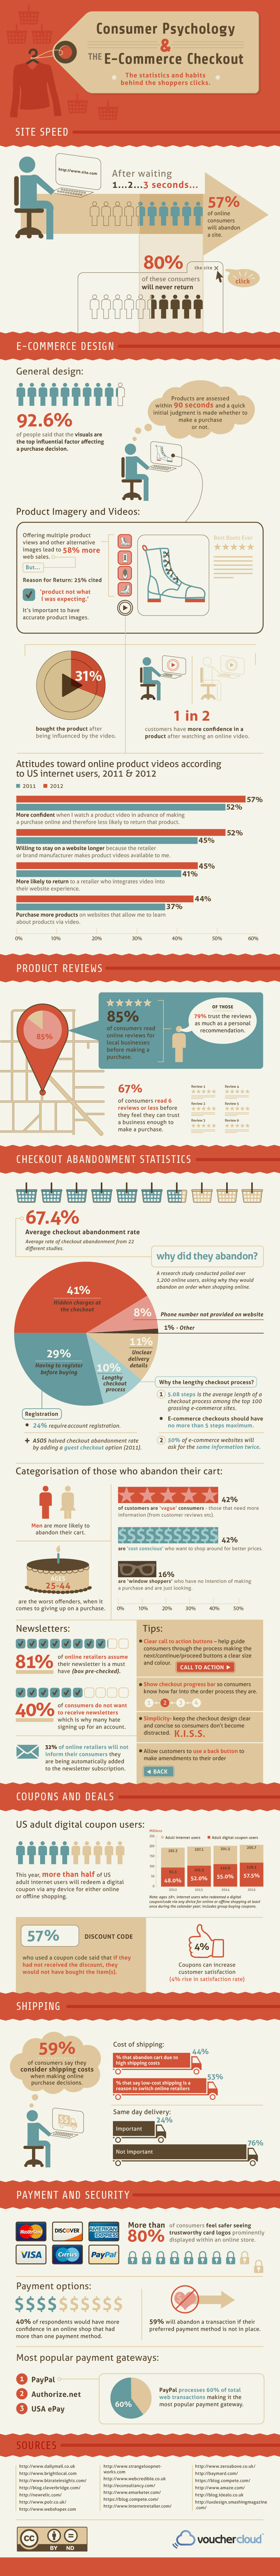 Consumer Psychology and eCommerce Checkouts